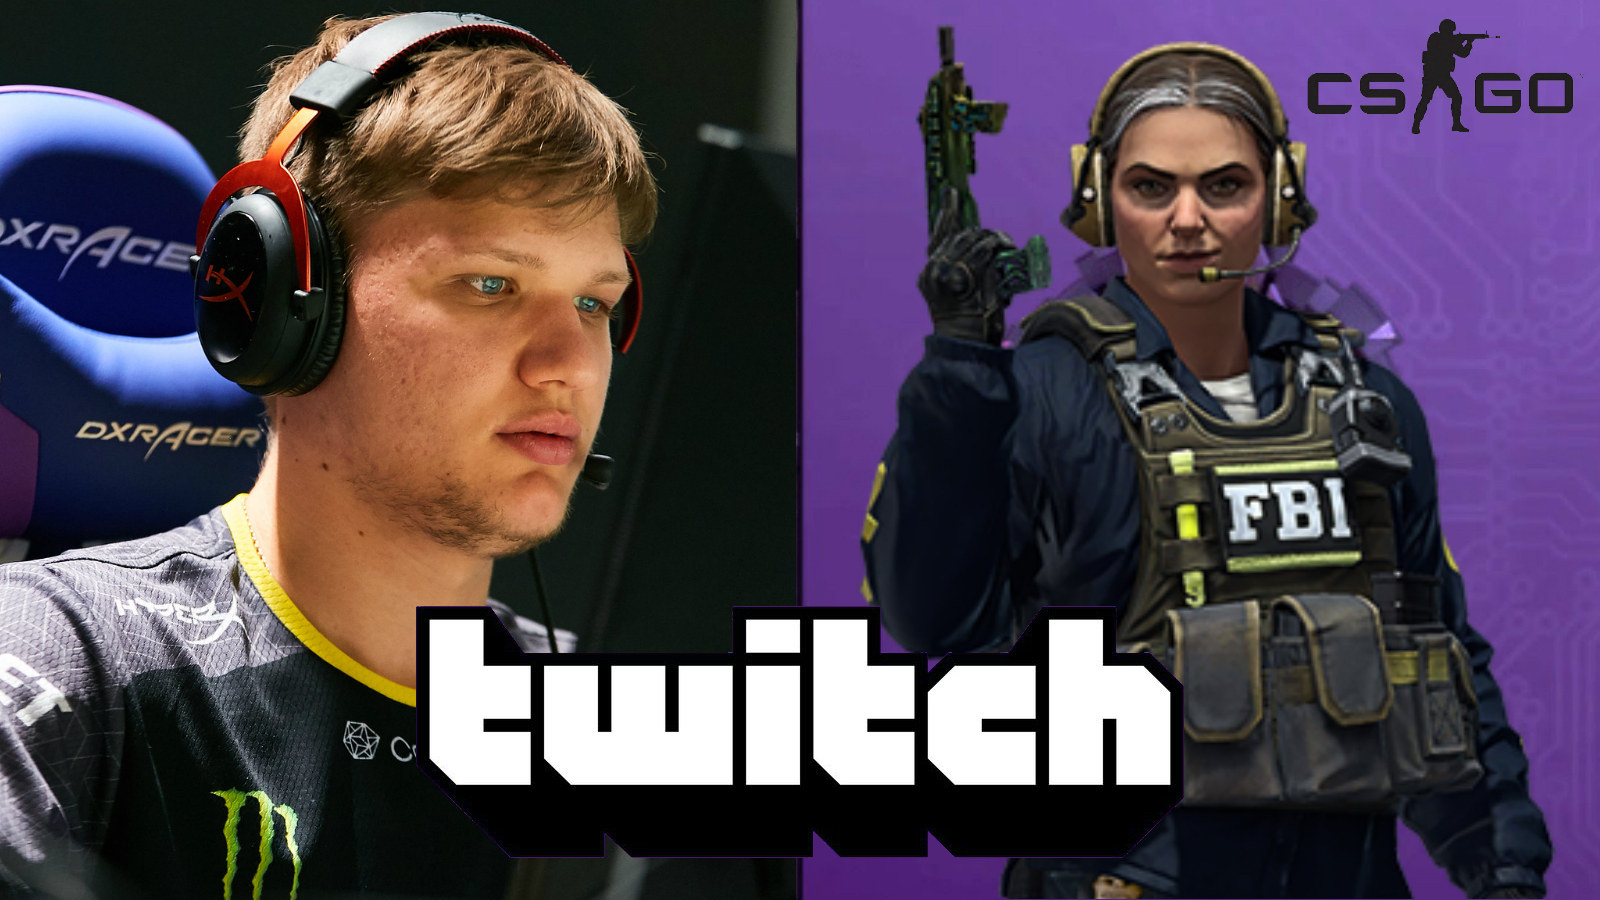 s1mple playing CSGO and Operation Shattered Web image